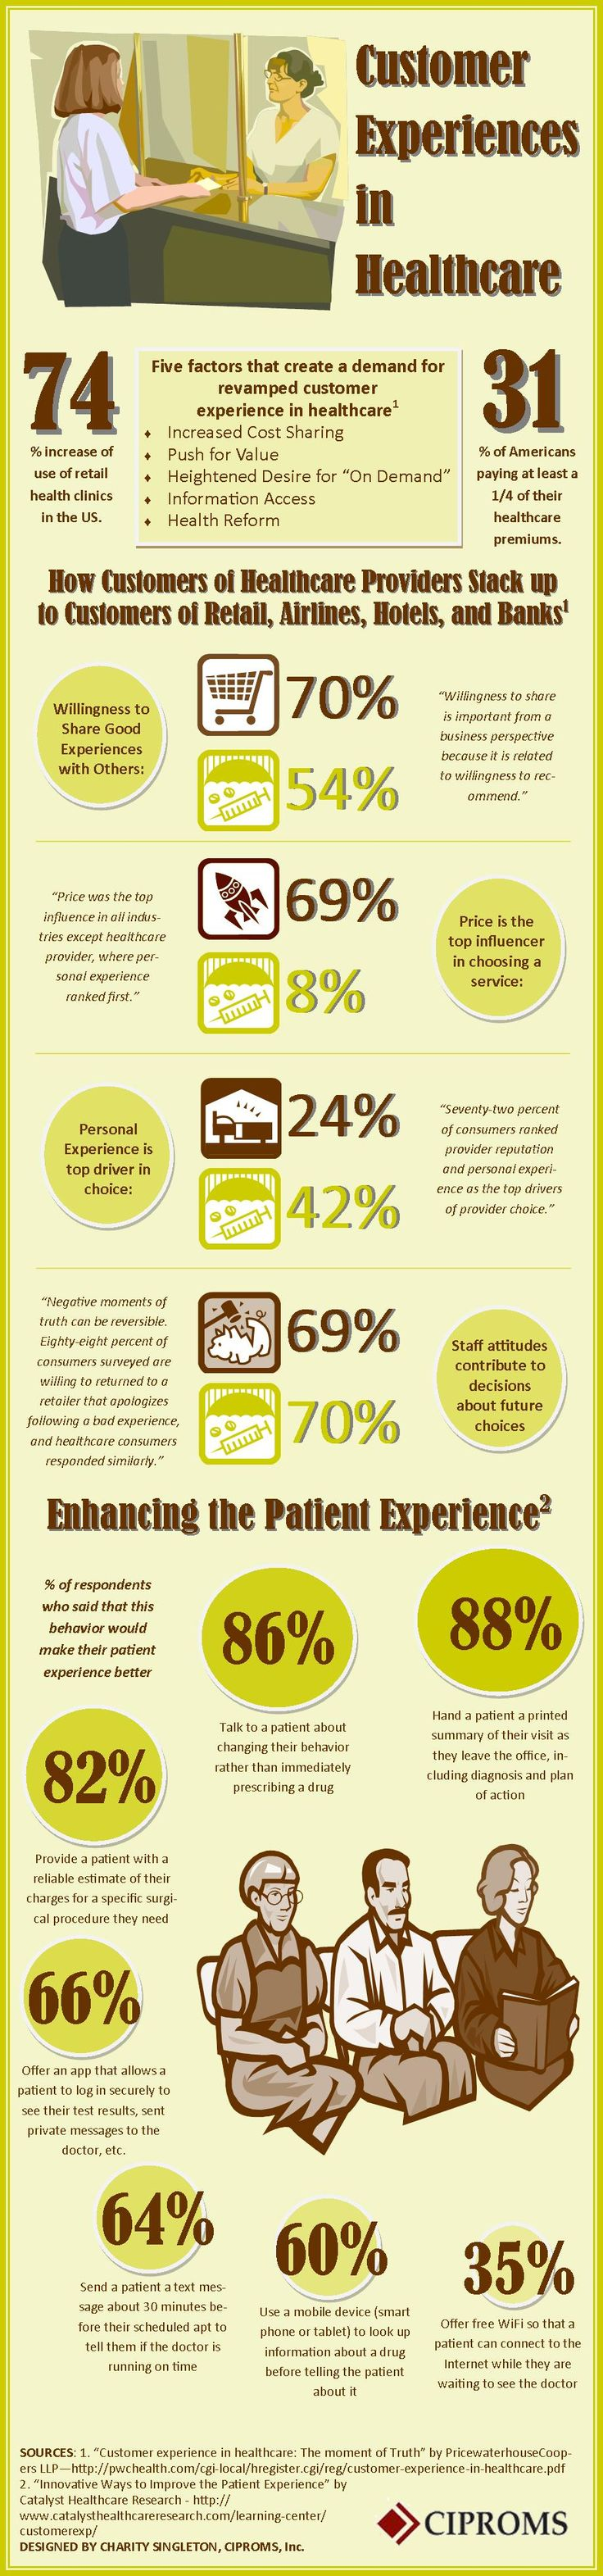 Patient needs from consultation